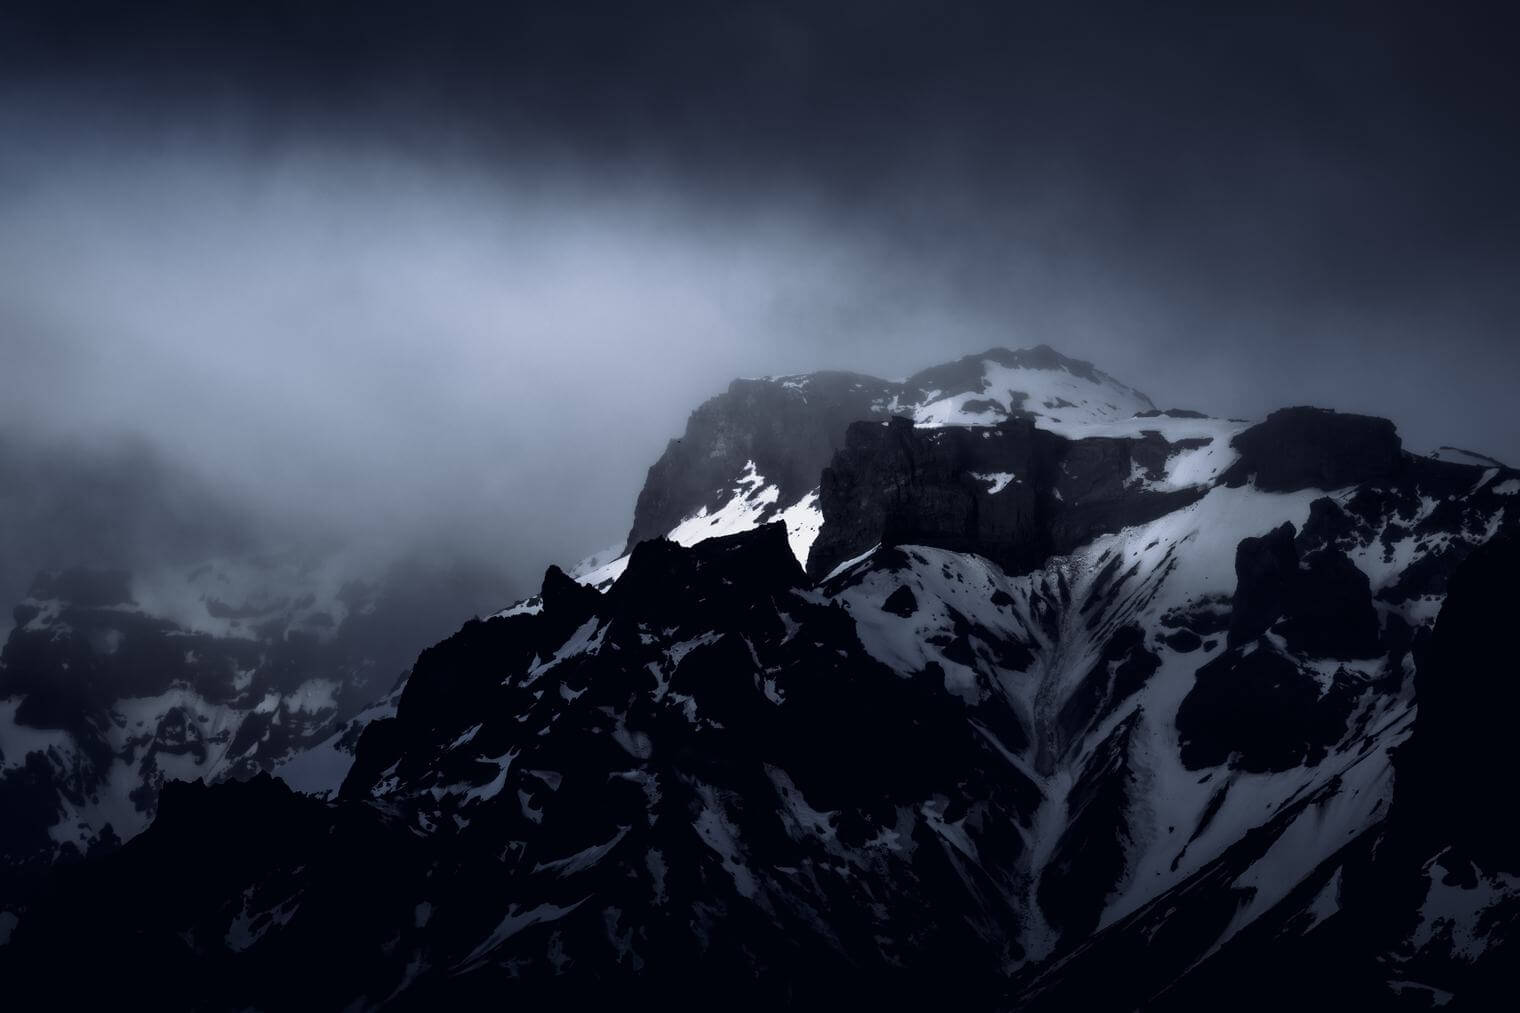 Moody and dramatic mountain landscape in Iceland